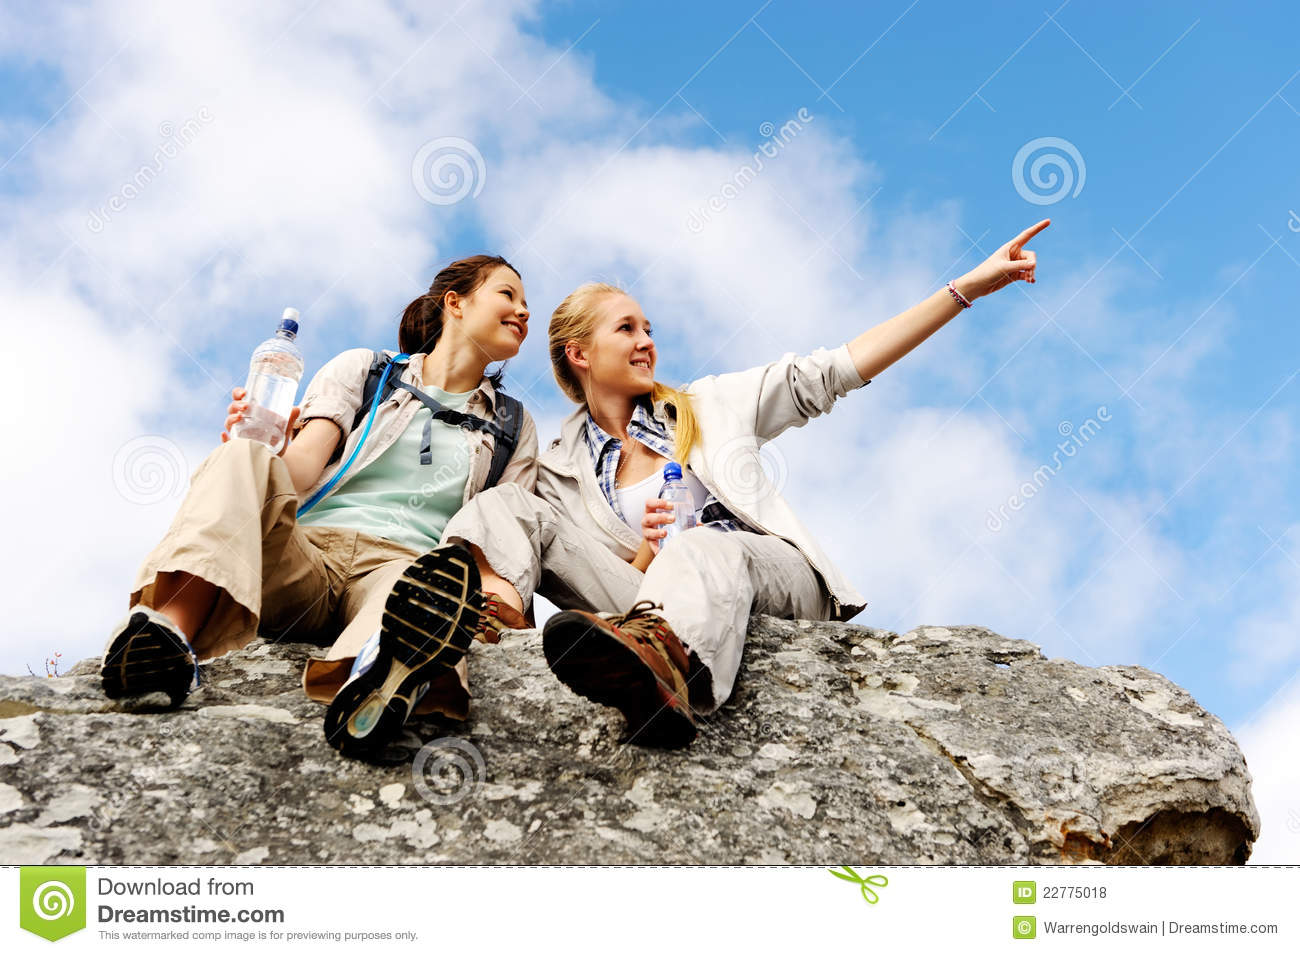 Two girls on a rock